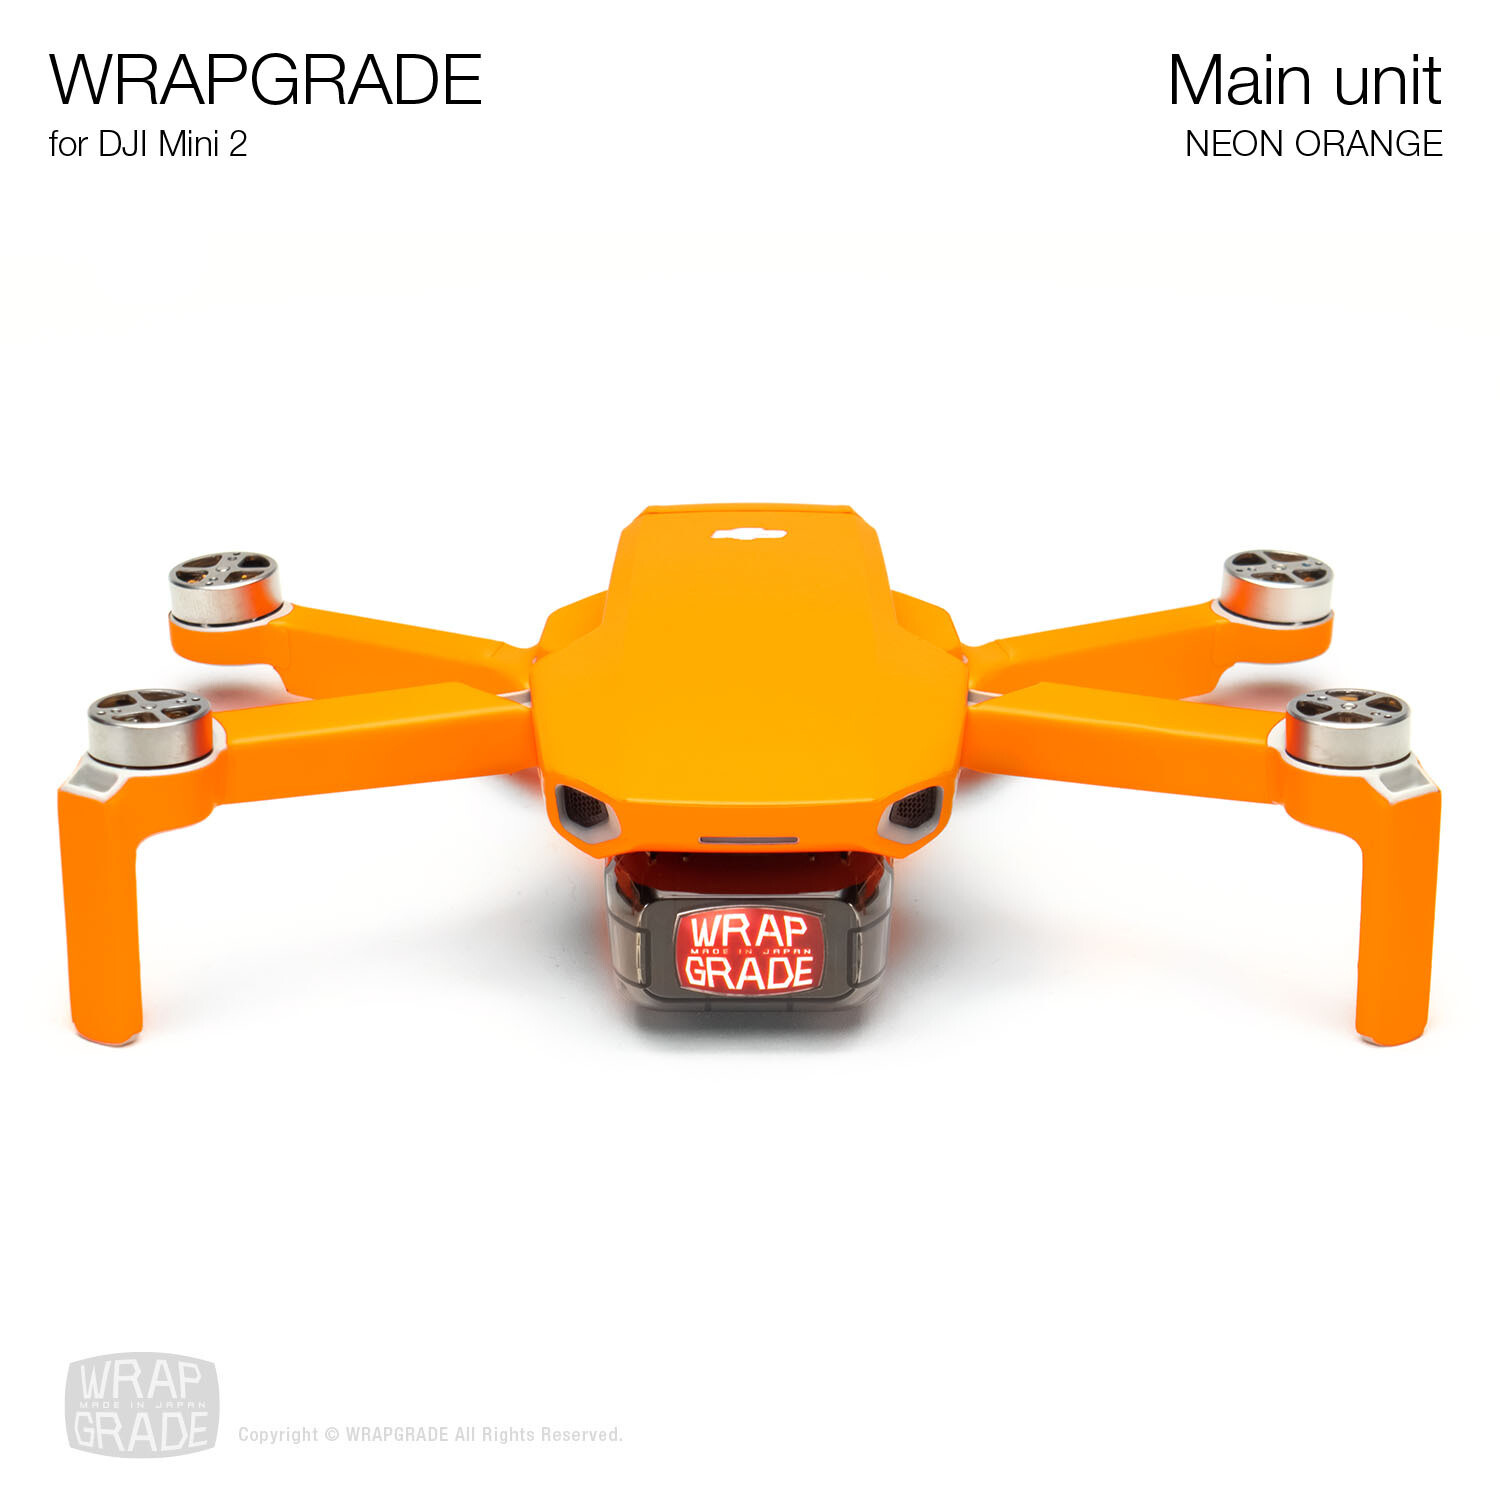 Wrapgrade Poly Skin for DJI Mini 2 | Main Unit (NEON ORANGE)